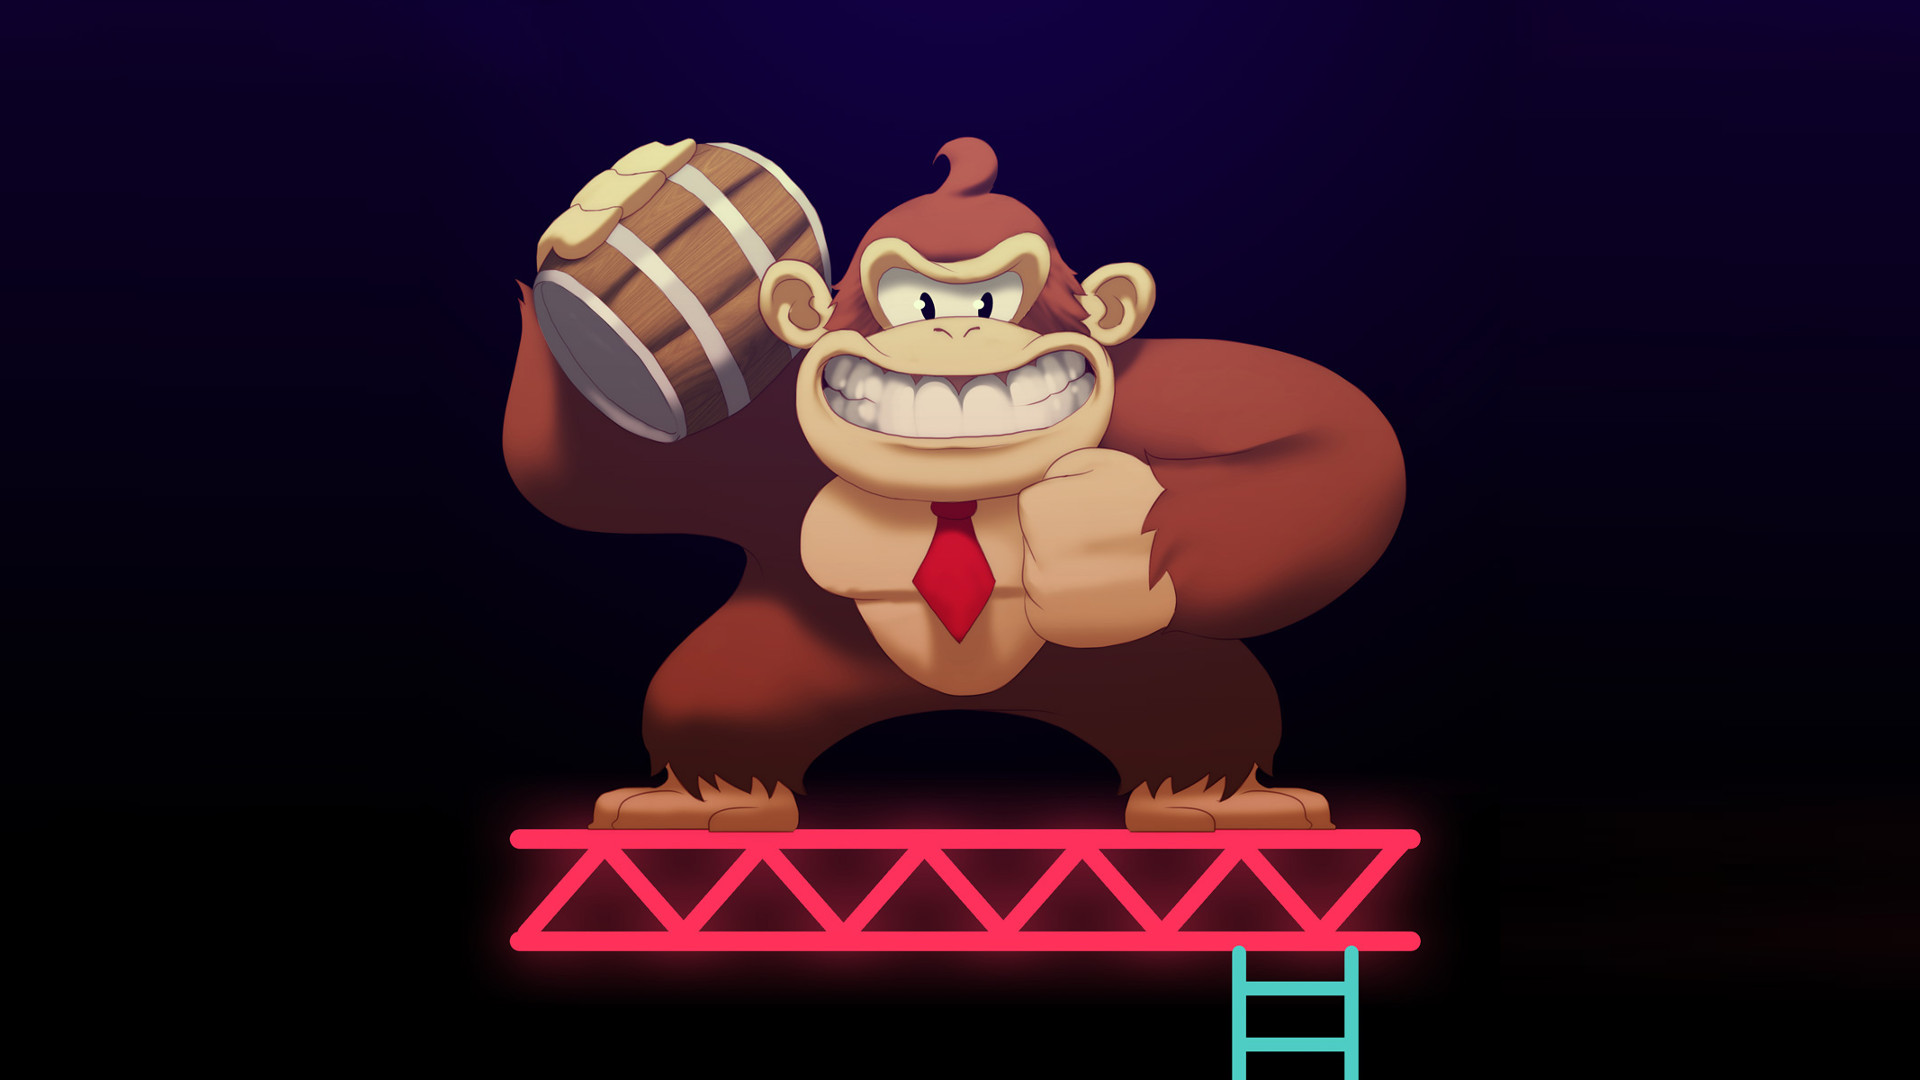 Donkey Kong Full HD Wallpaper And Background Image